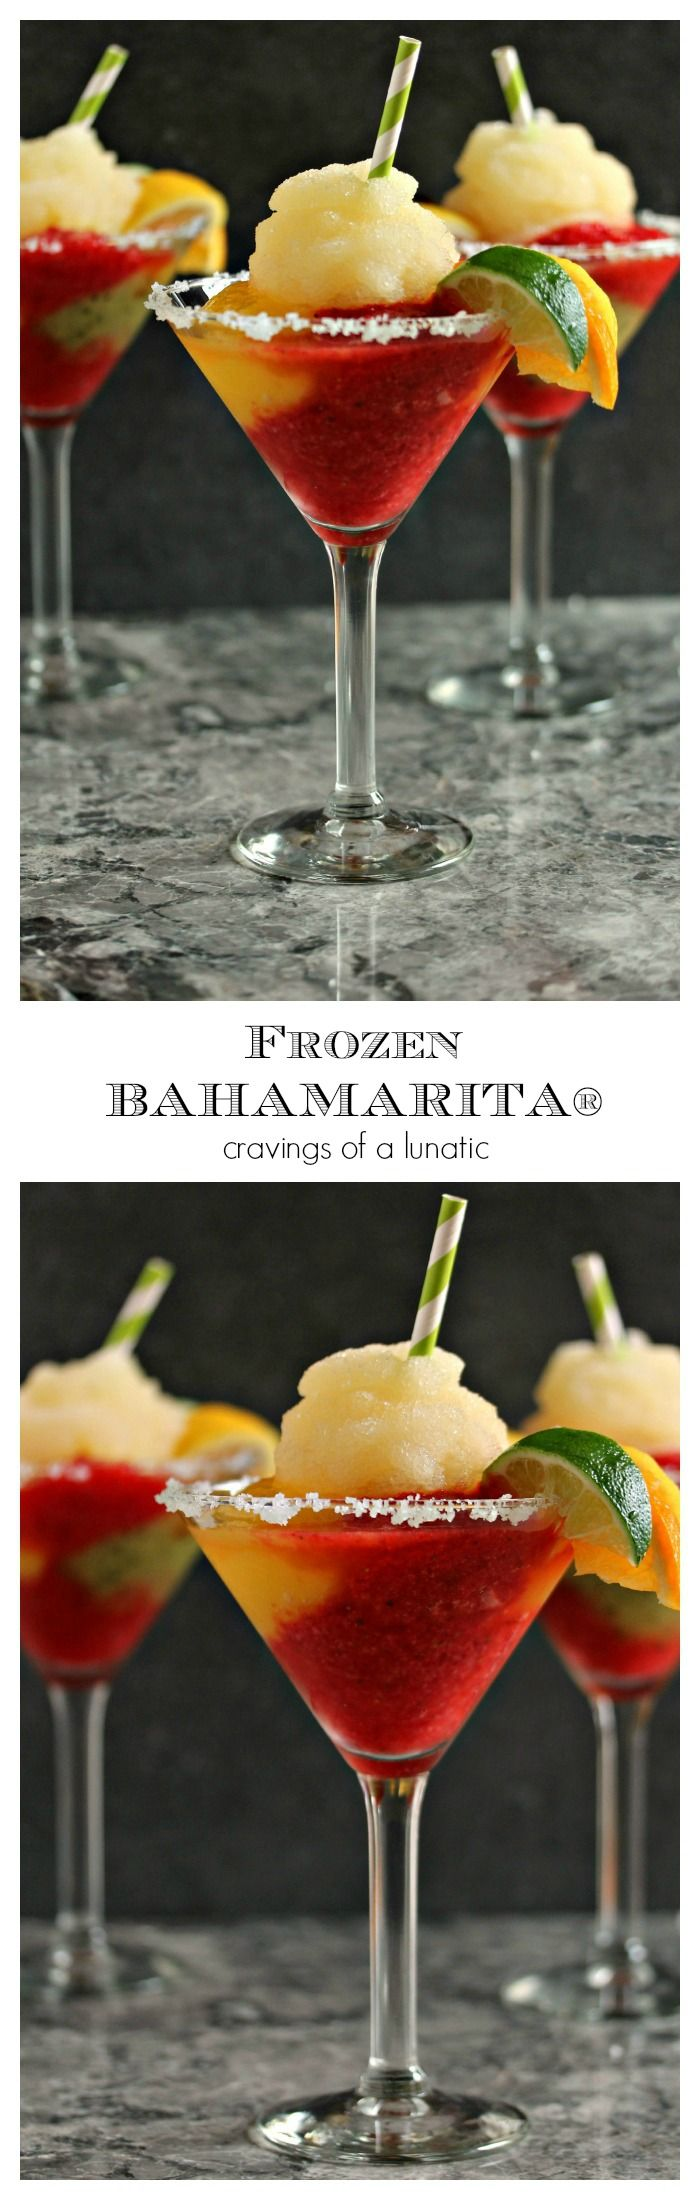 Frozen Bahamarita- This Frozen Margarita recipe is sure to be a hit at your next party. It's made with Tequila, kiwi, strawberry and mango ices and served with a shot of Cactus Juice Schnapps